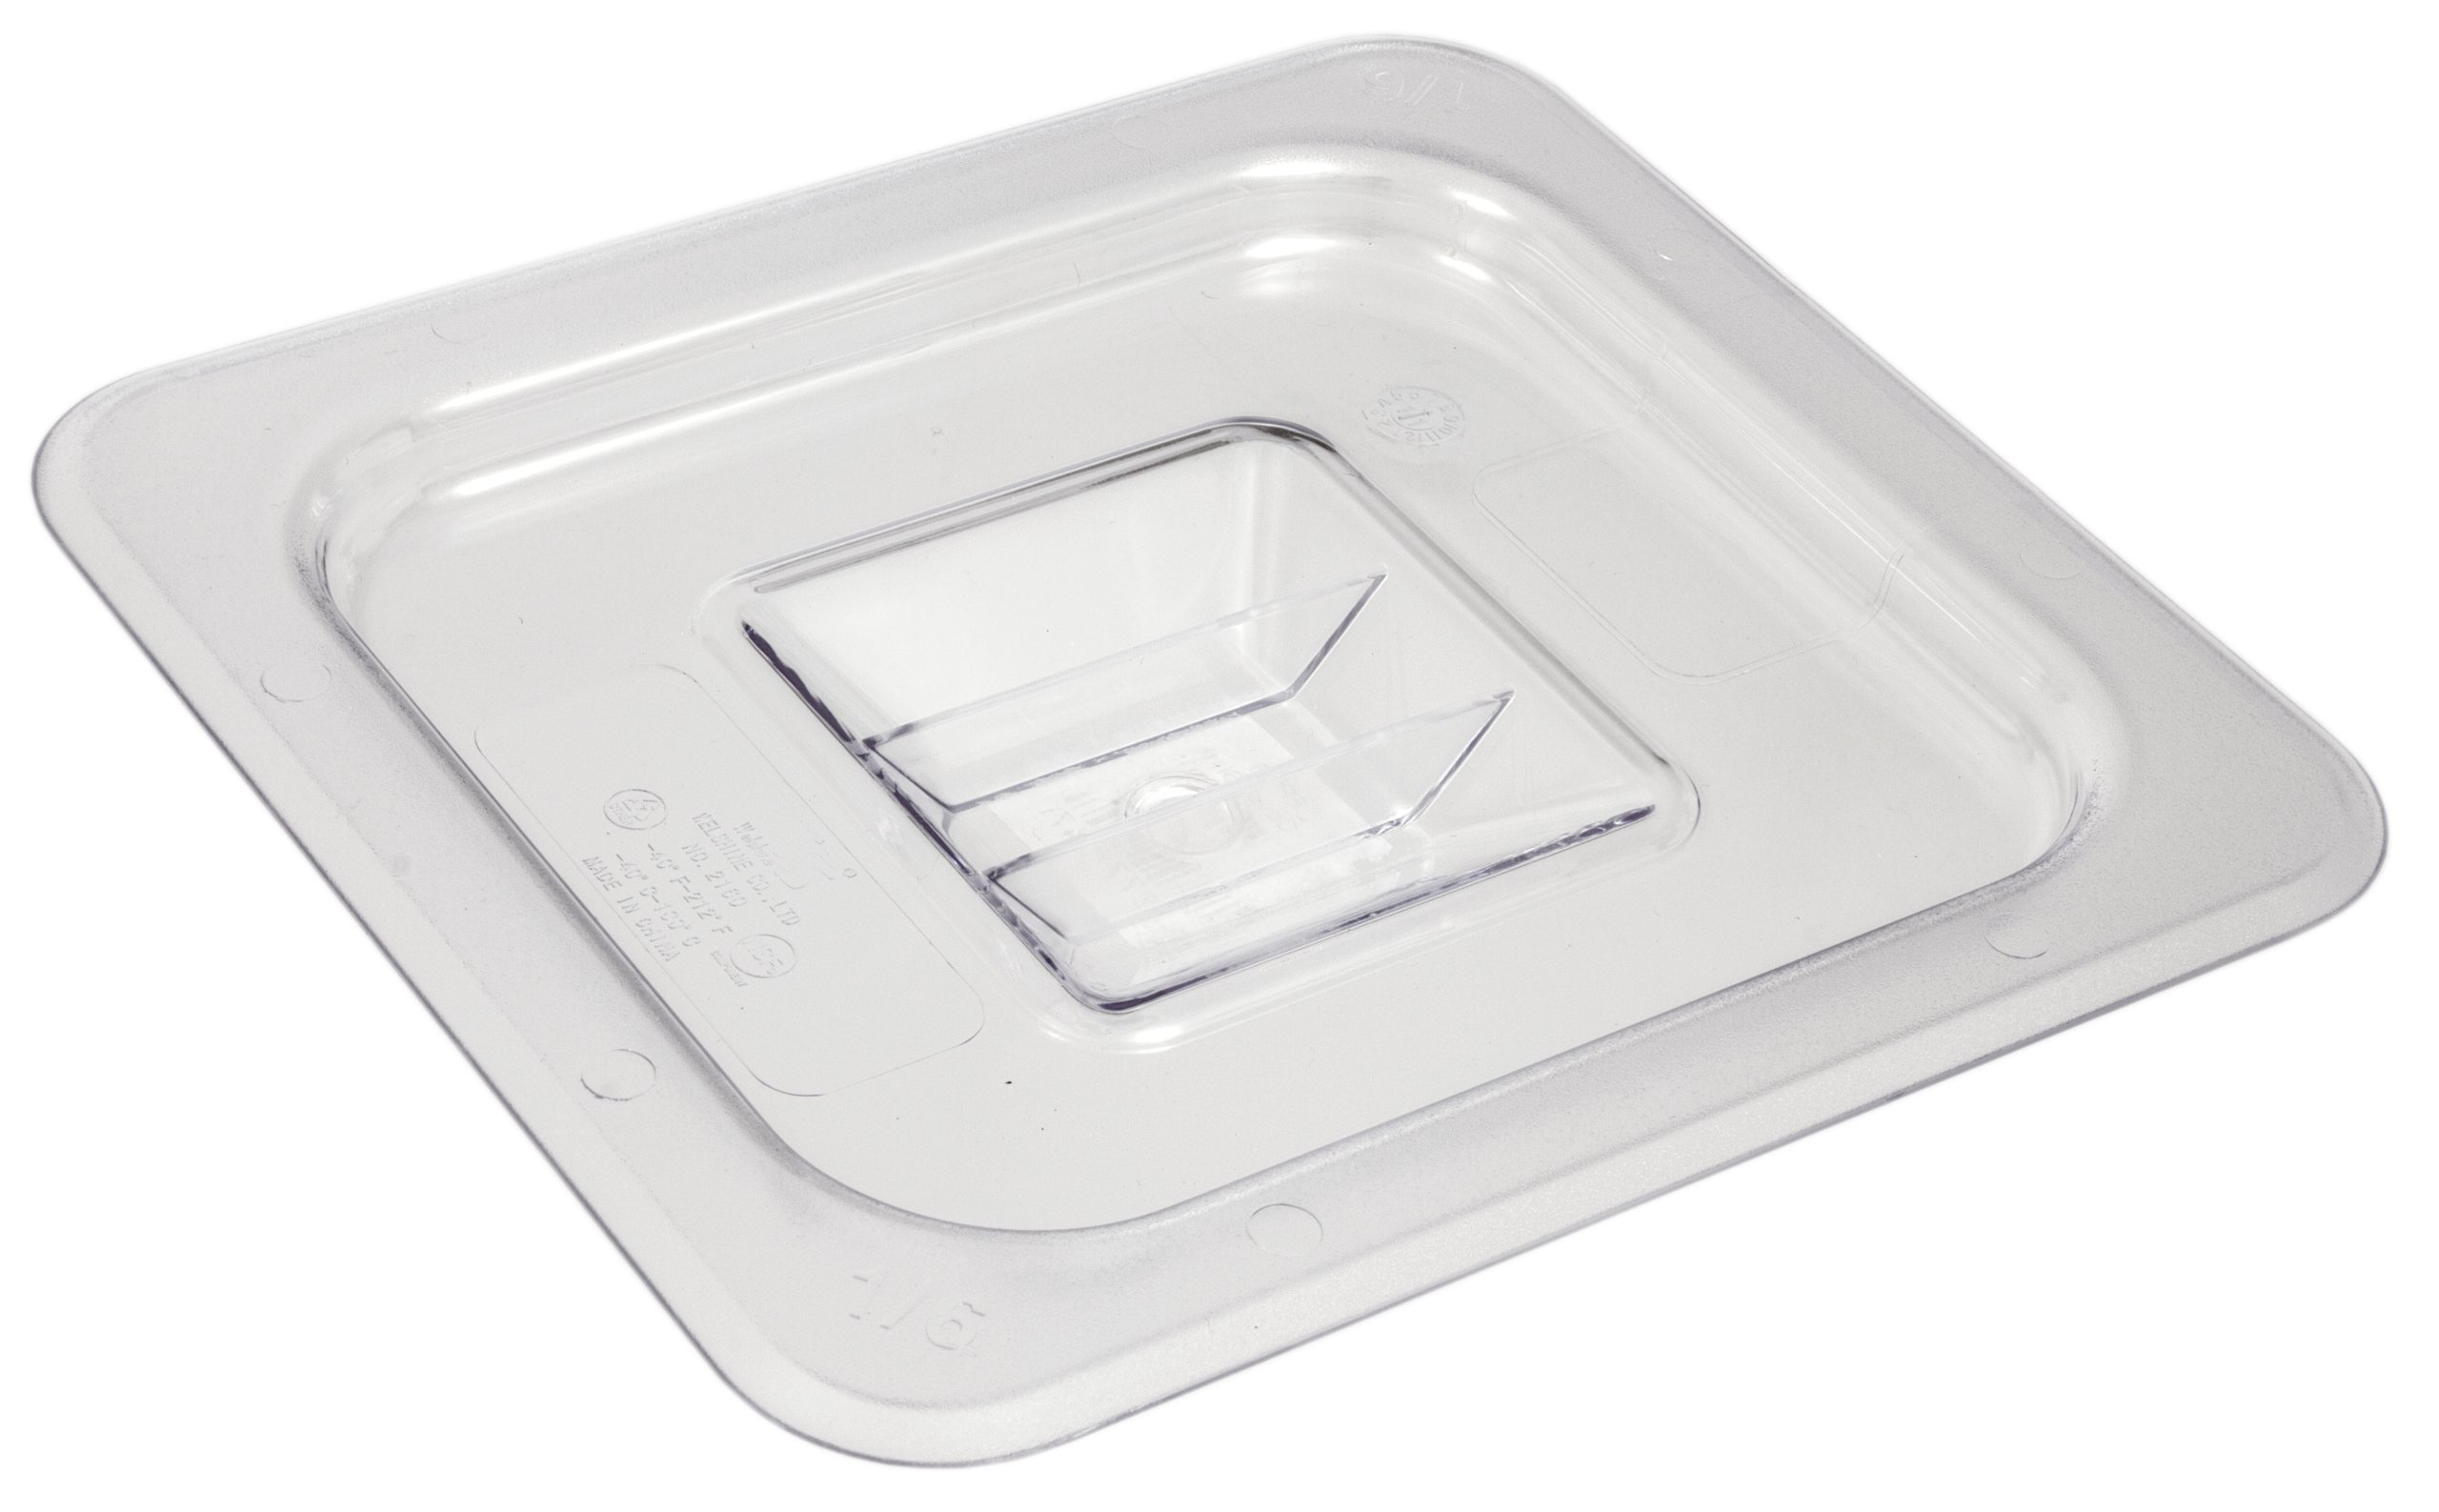 Crestware Commercial Grade, FP92, Polycarbonate Food Pan Ninth Size 2.5'', Set of 9